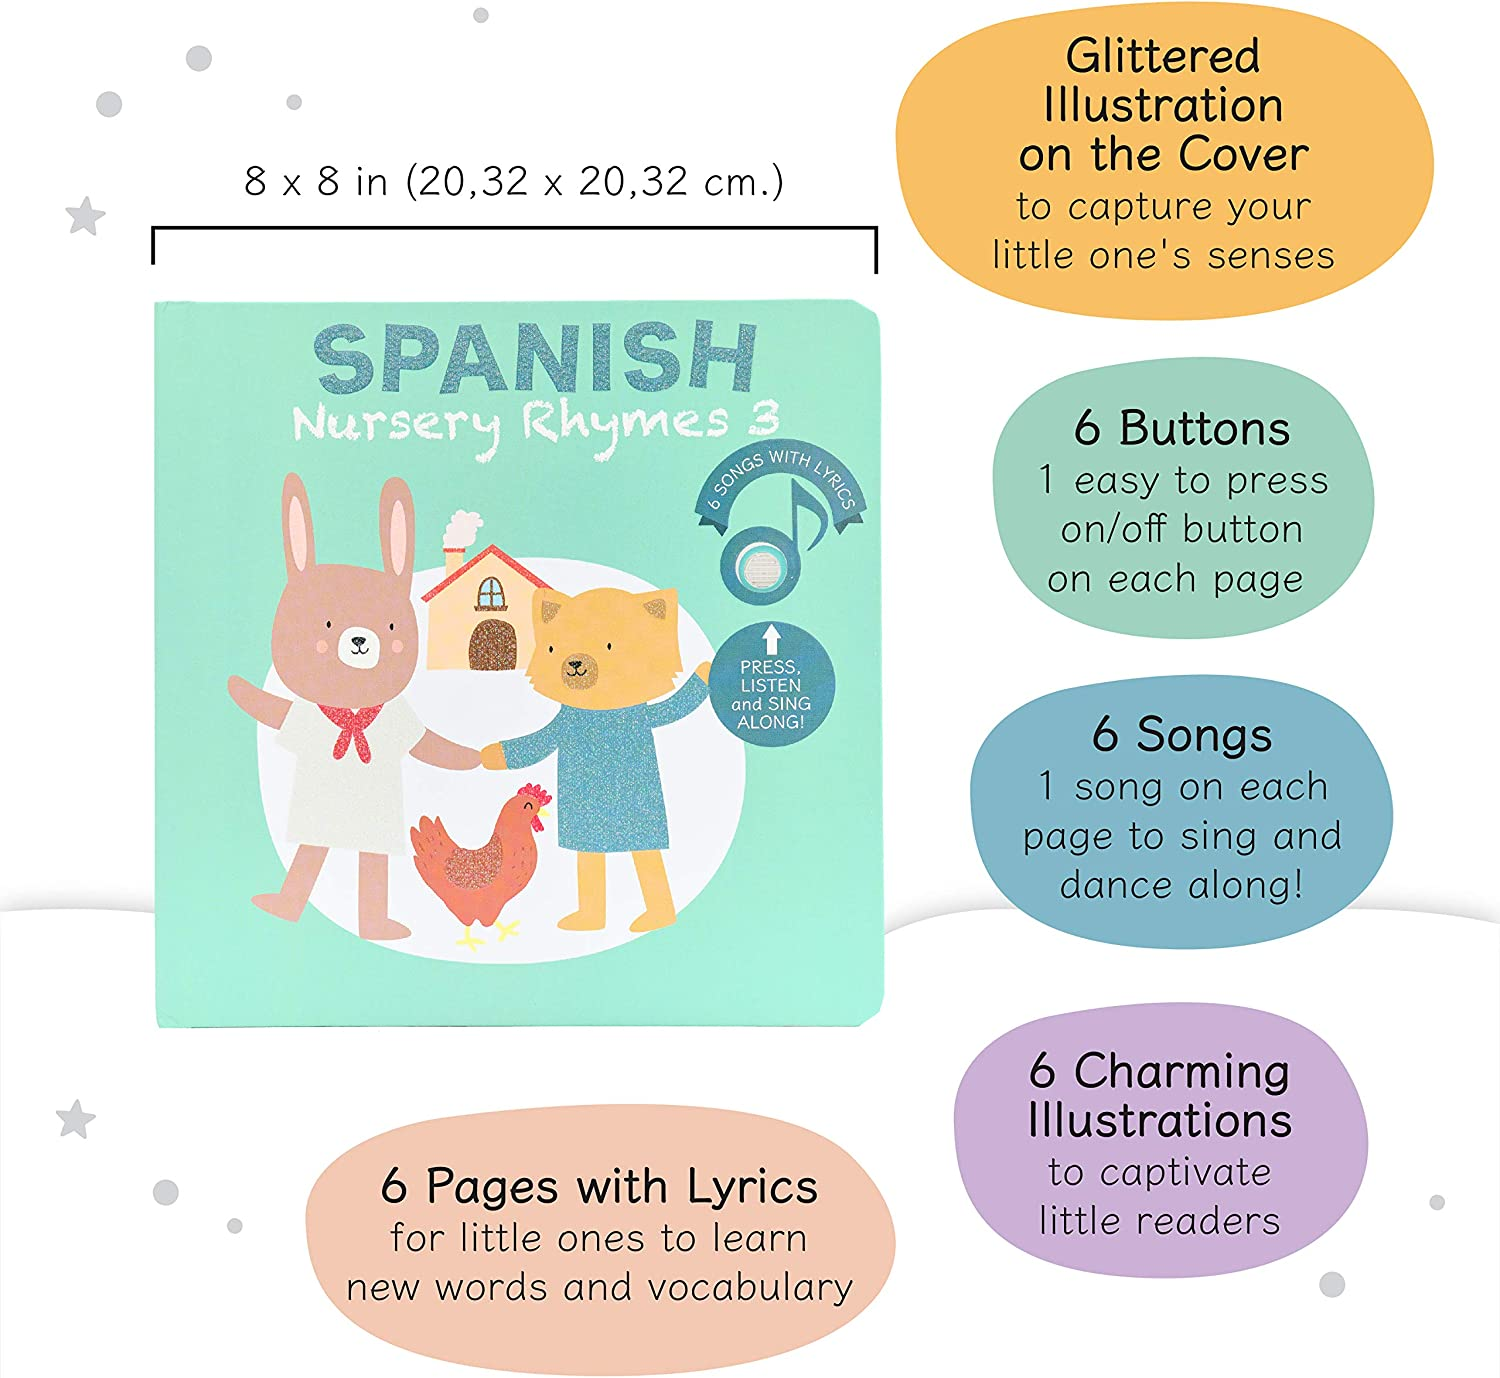 Listen and Sing Along Calis Books Spanish Nursery Rhymes 3- Press Bilingual Spanish- English Sound Book for Babies and Toddlers Ages 1-4